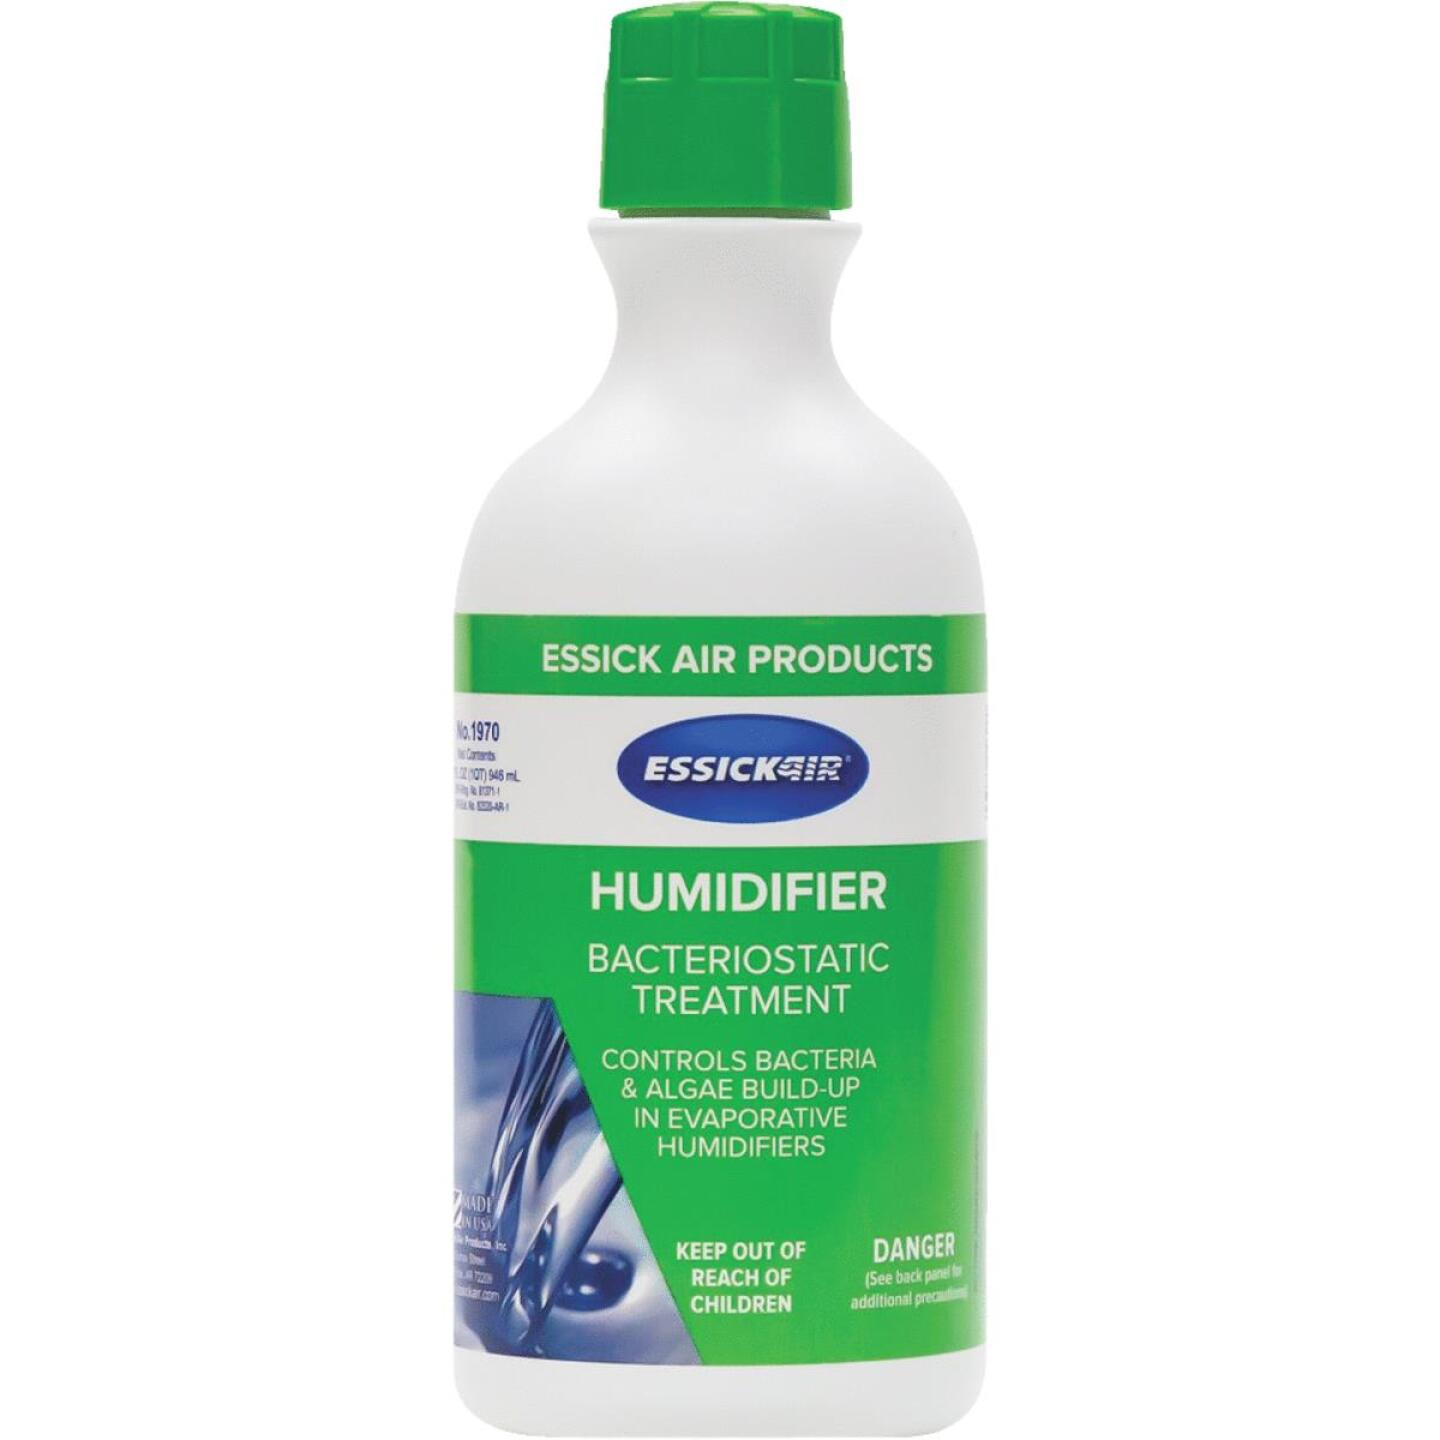 Essick Air 32 Oz. Humidifier Bacteria Treatment Image 1